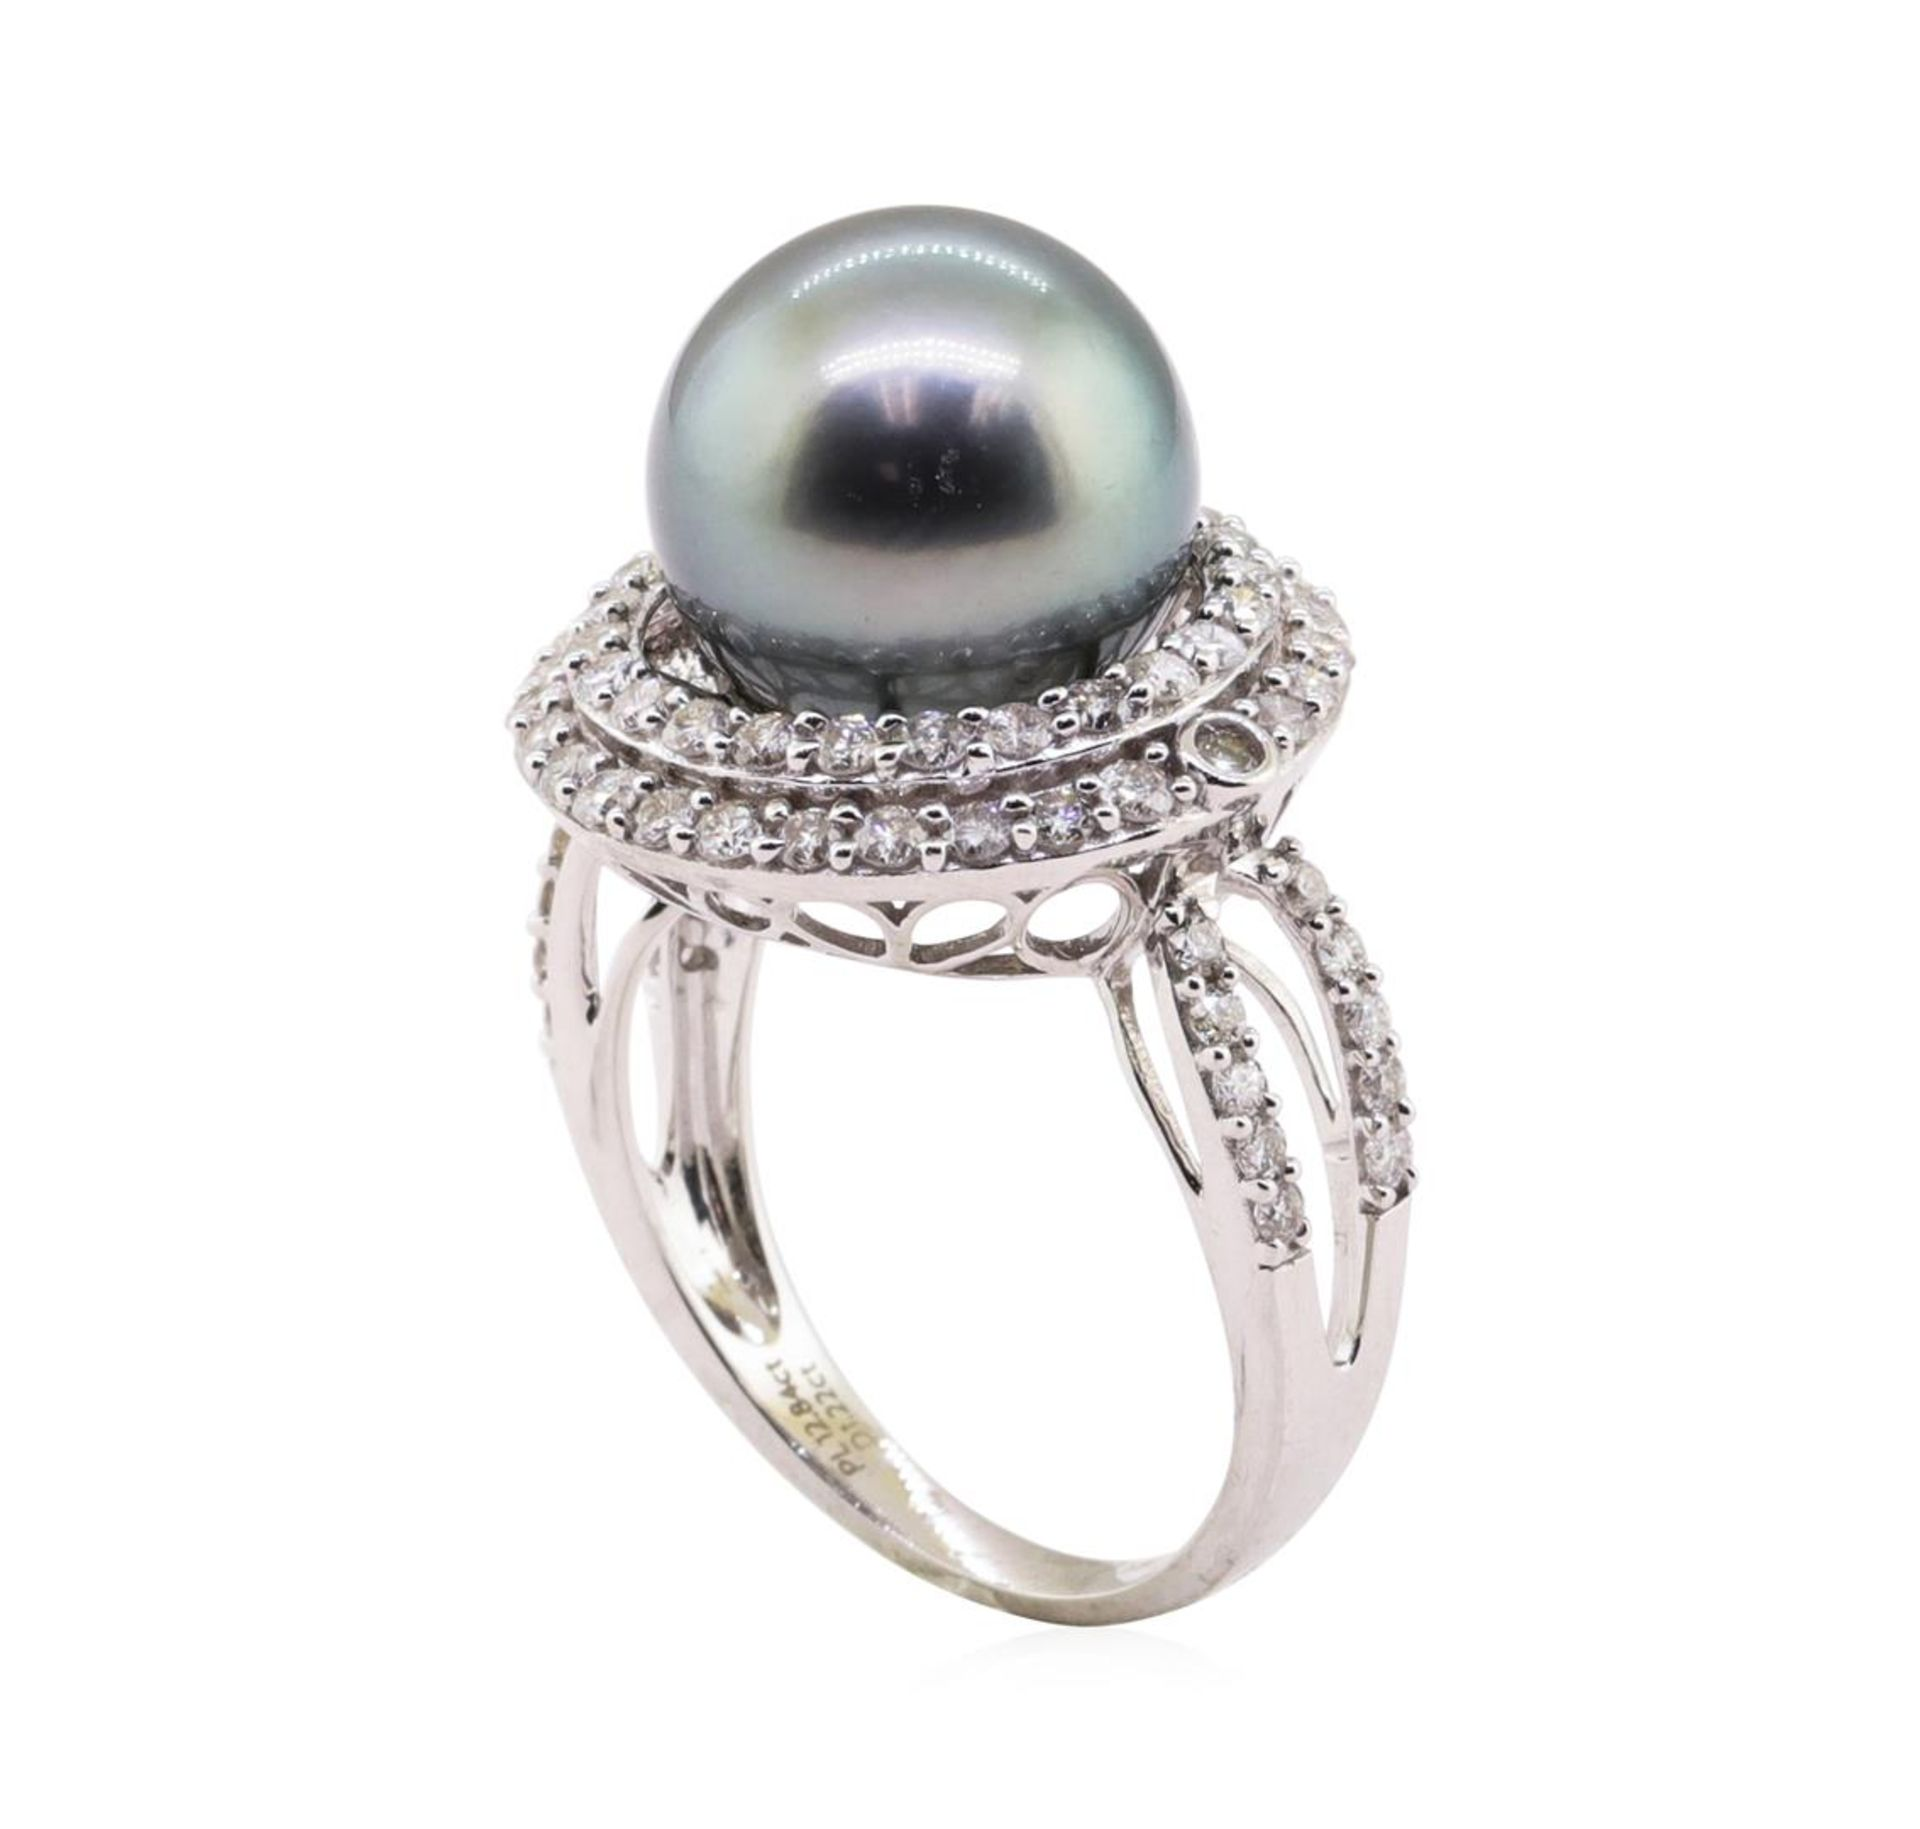 Tahitian Pearl and Diamond Ring - 18KT White Gold - Image 4 of 5